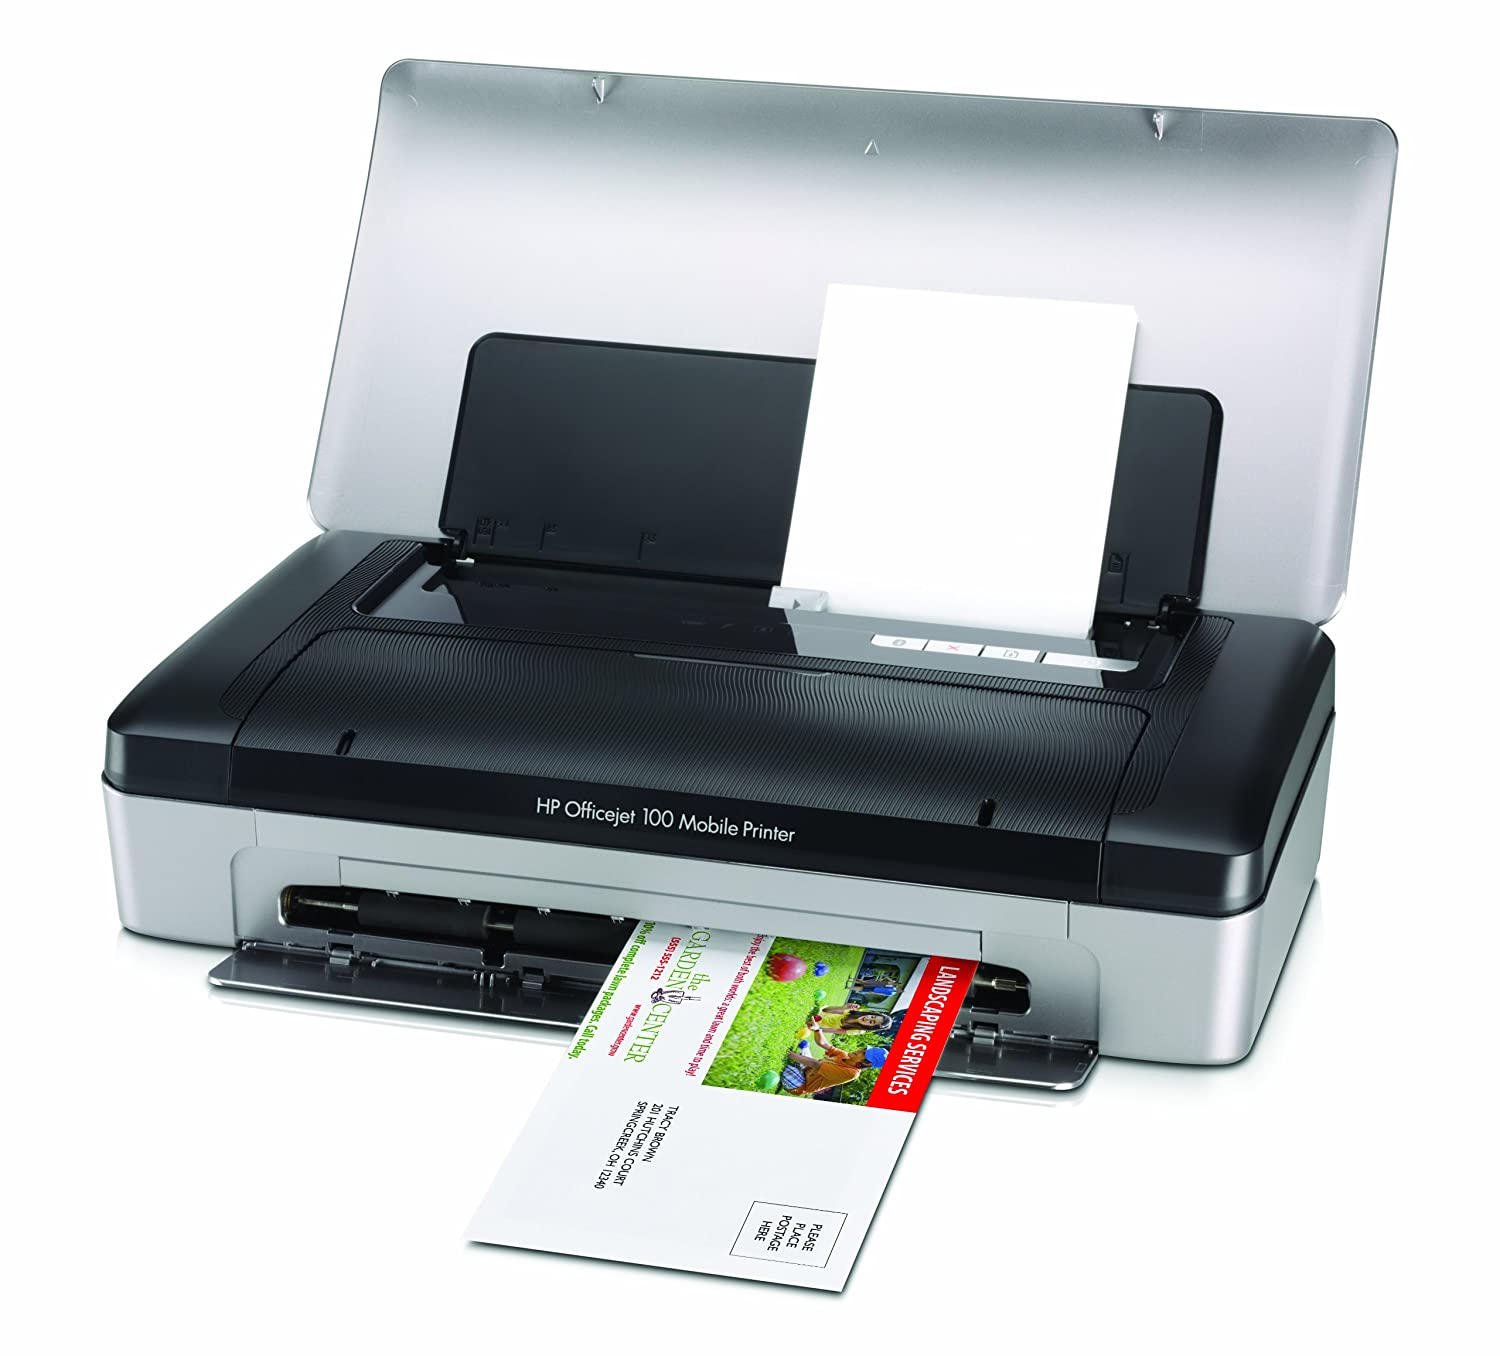 HP Deskjet 1000 - Miniature Assistant 55